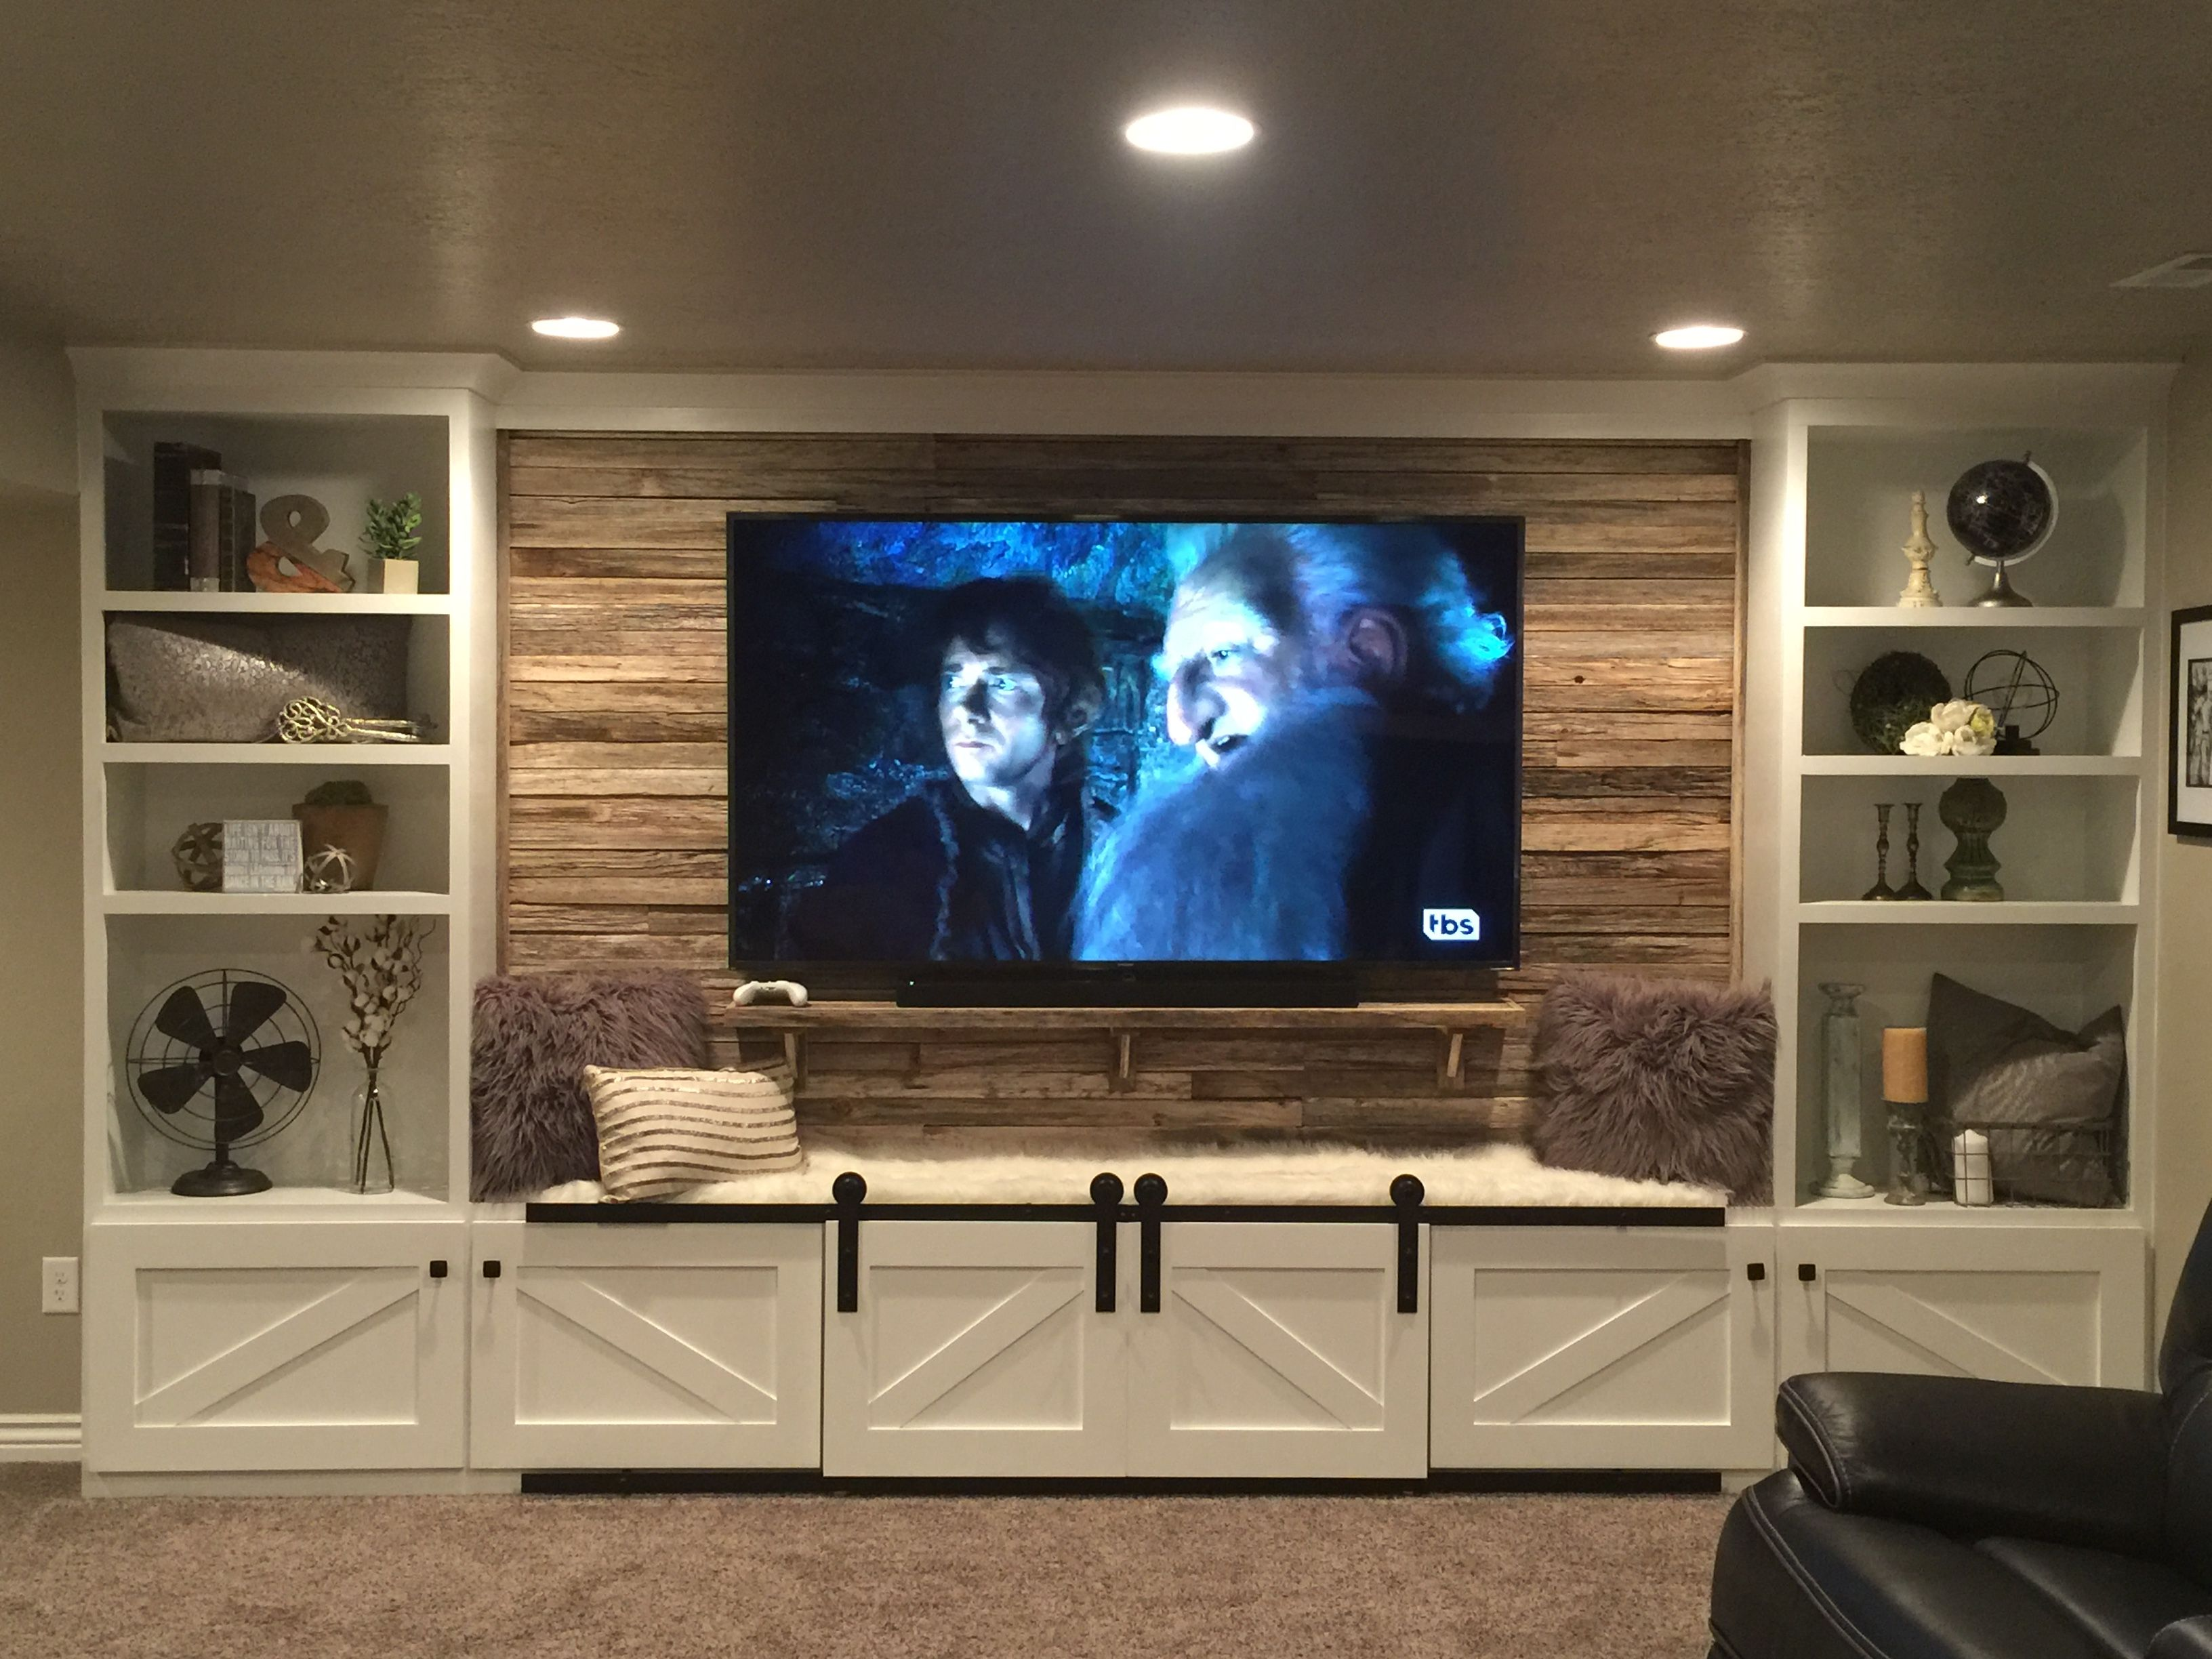 Our Hand Crafted Entertainment Center Built In With 75 Yr Old Reclaimed Wood Behind Living Room Entertainment Center Living Room Entertainment Basement Design